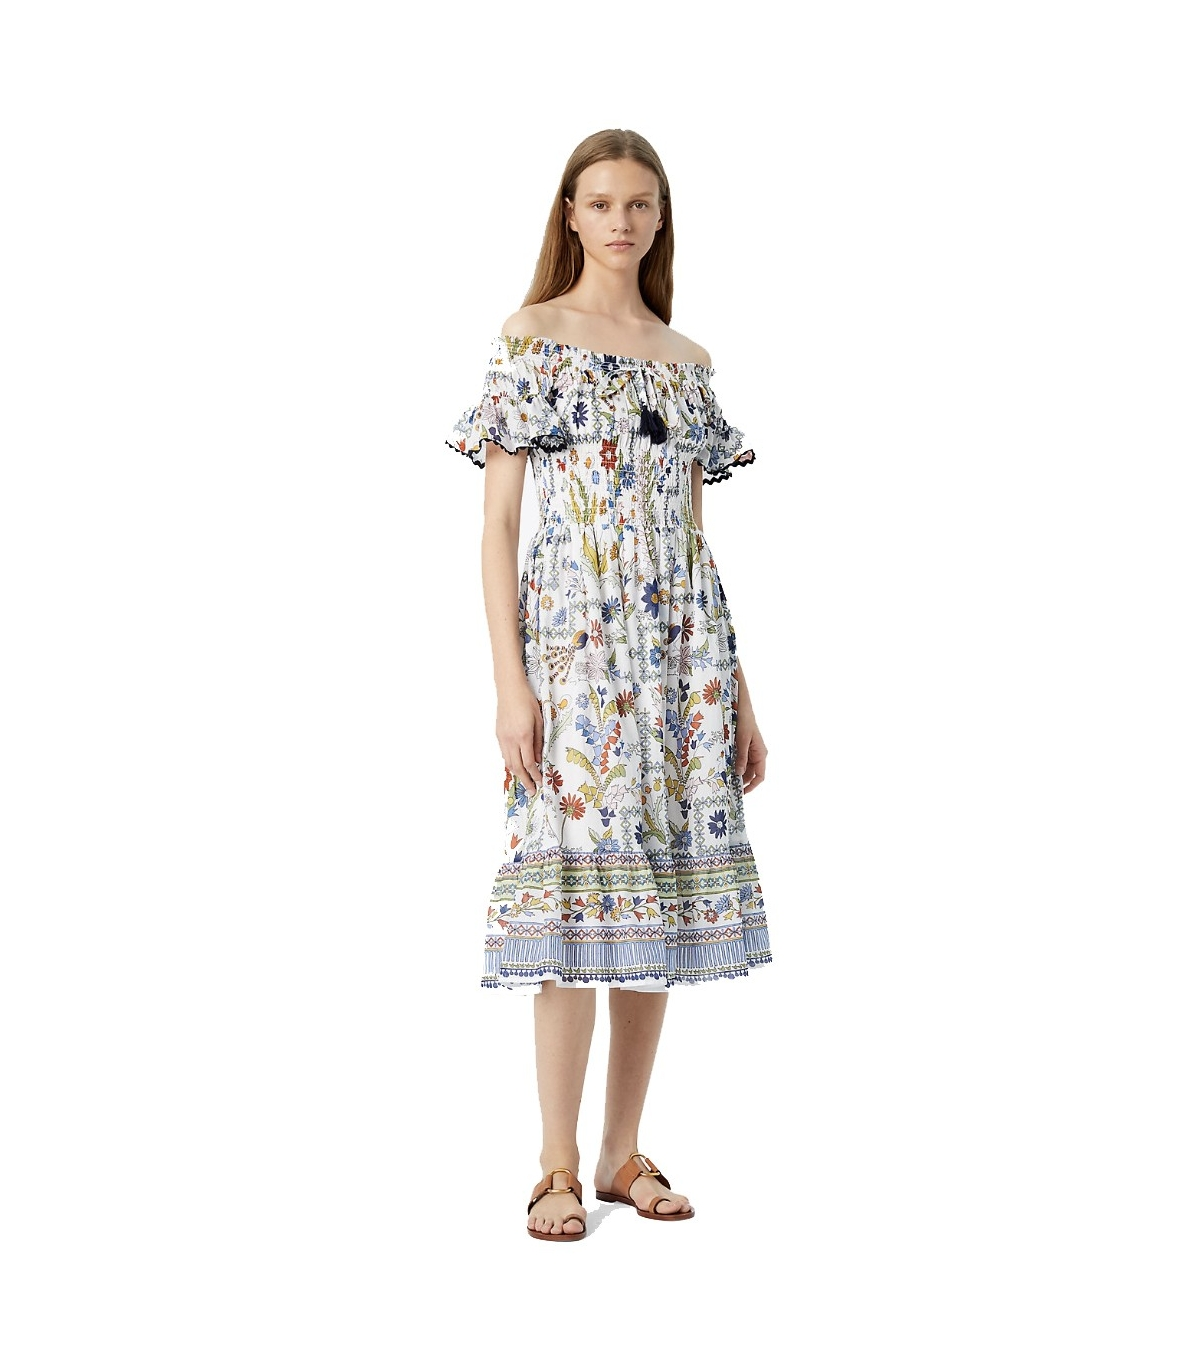 475009b400862 Tory Burch MEADOW FOLLY DRESS